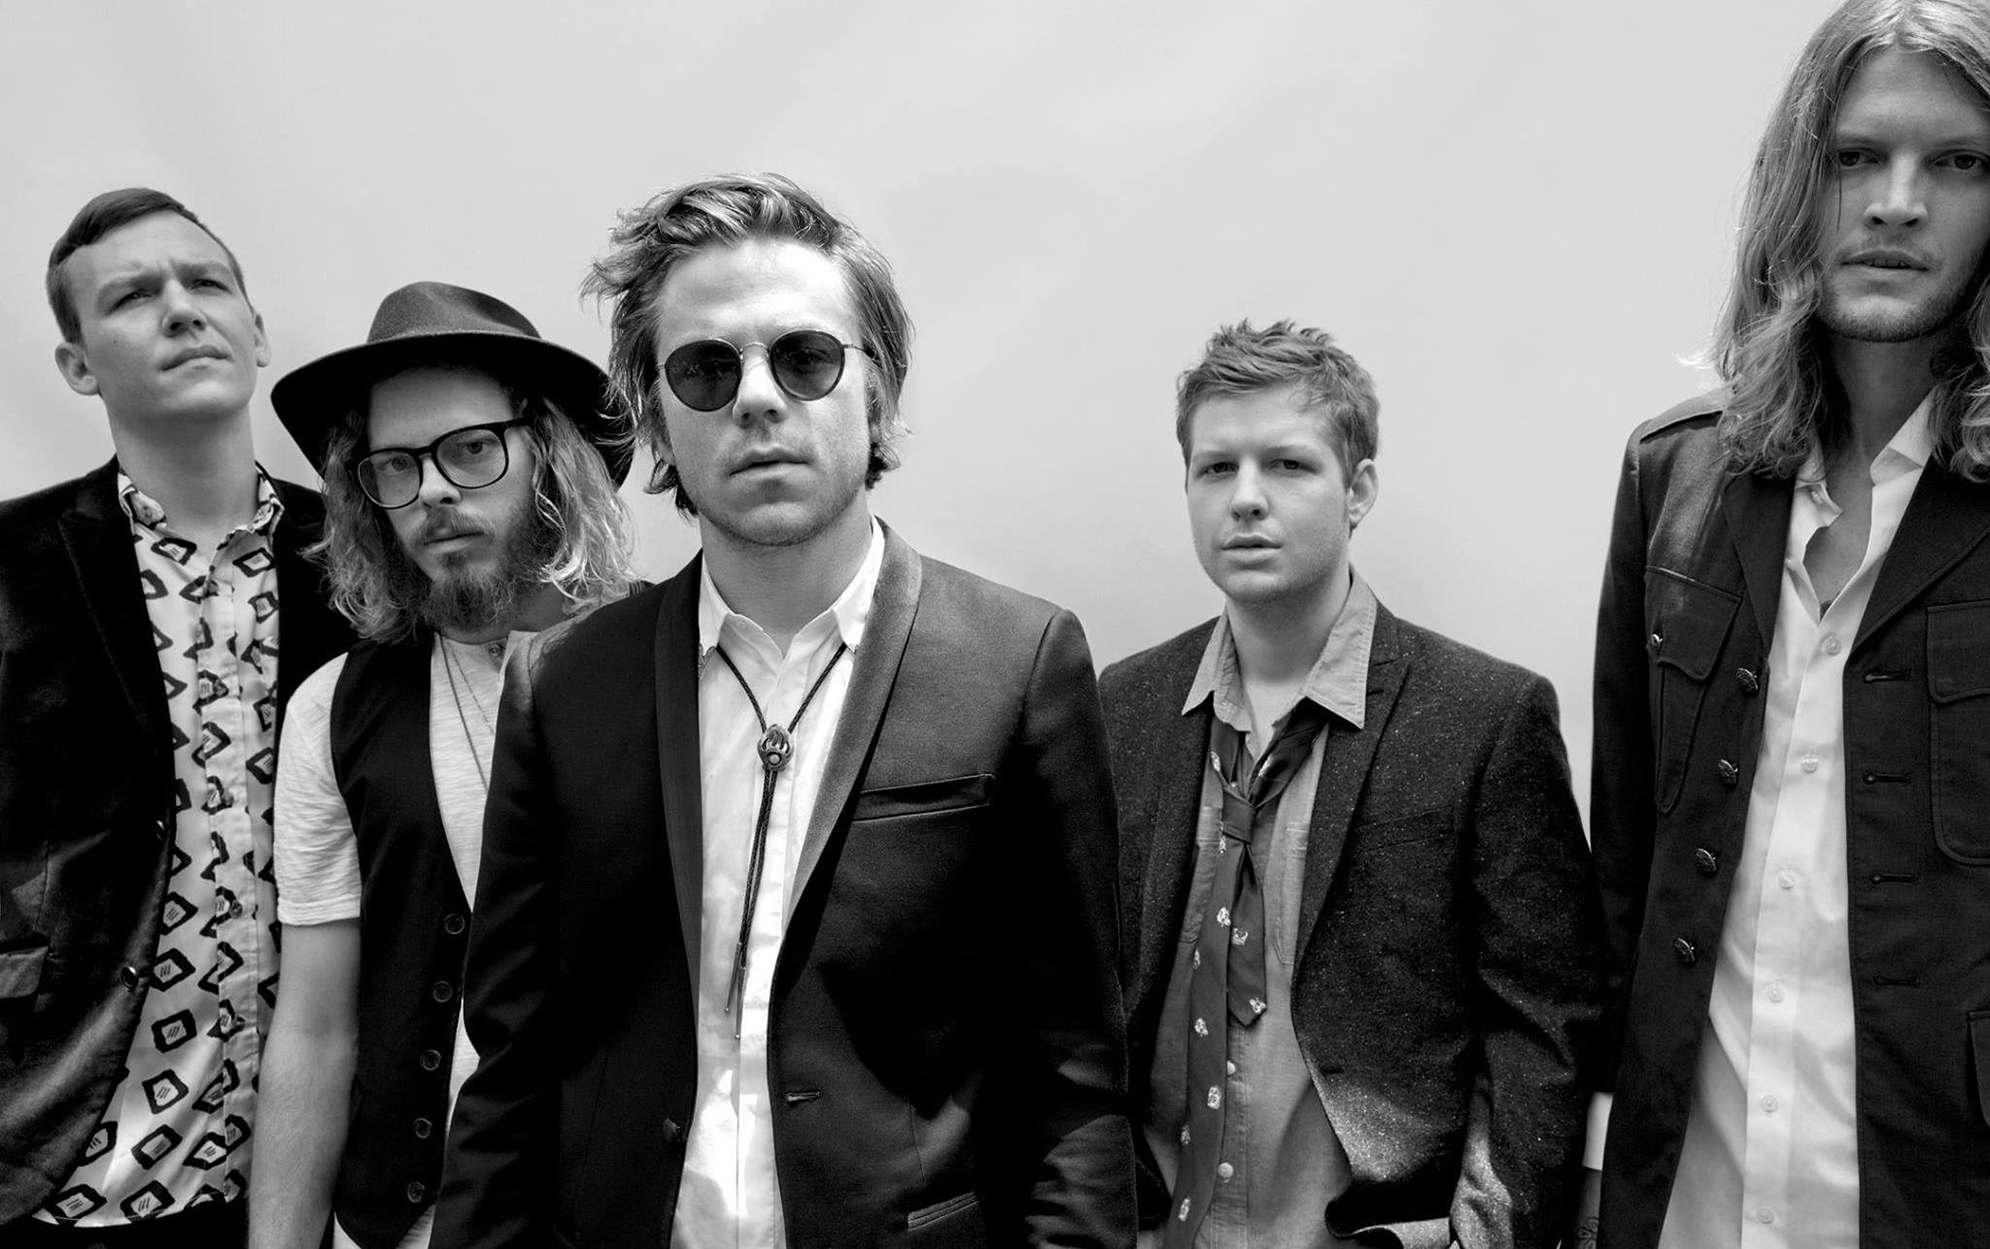 https://negativewhite.ch/wp-content/uploads/2016/12/cage-the-elephant_001.jpg